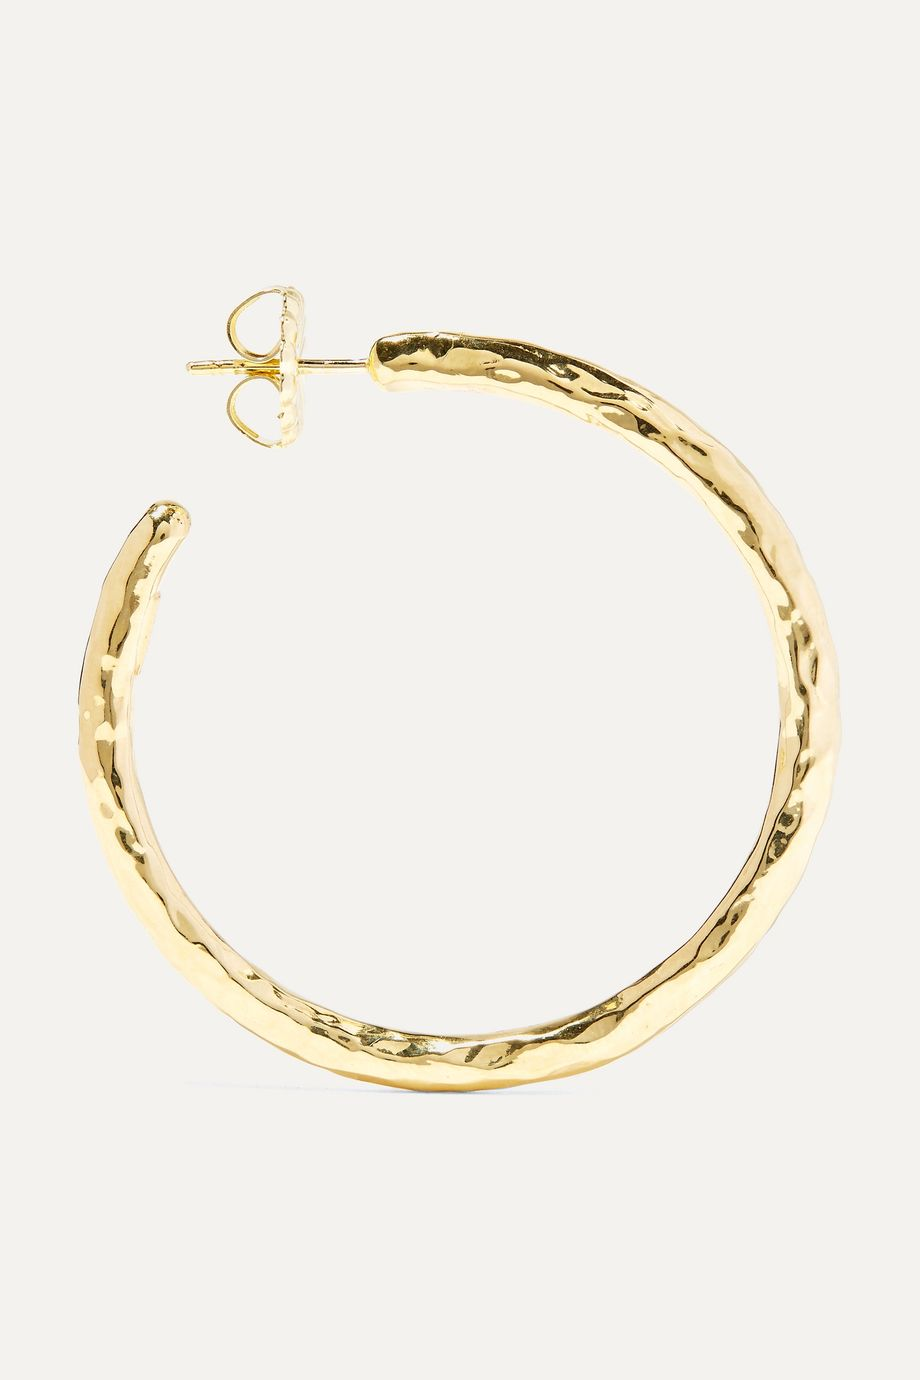 Ippolita Classico 18-karat gold hoop earrings